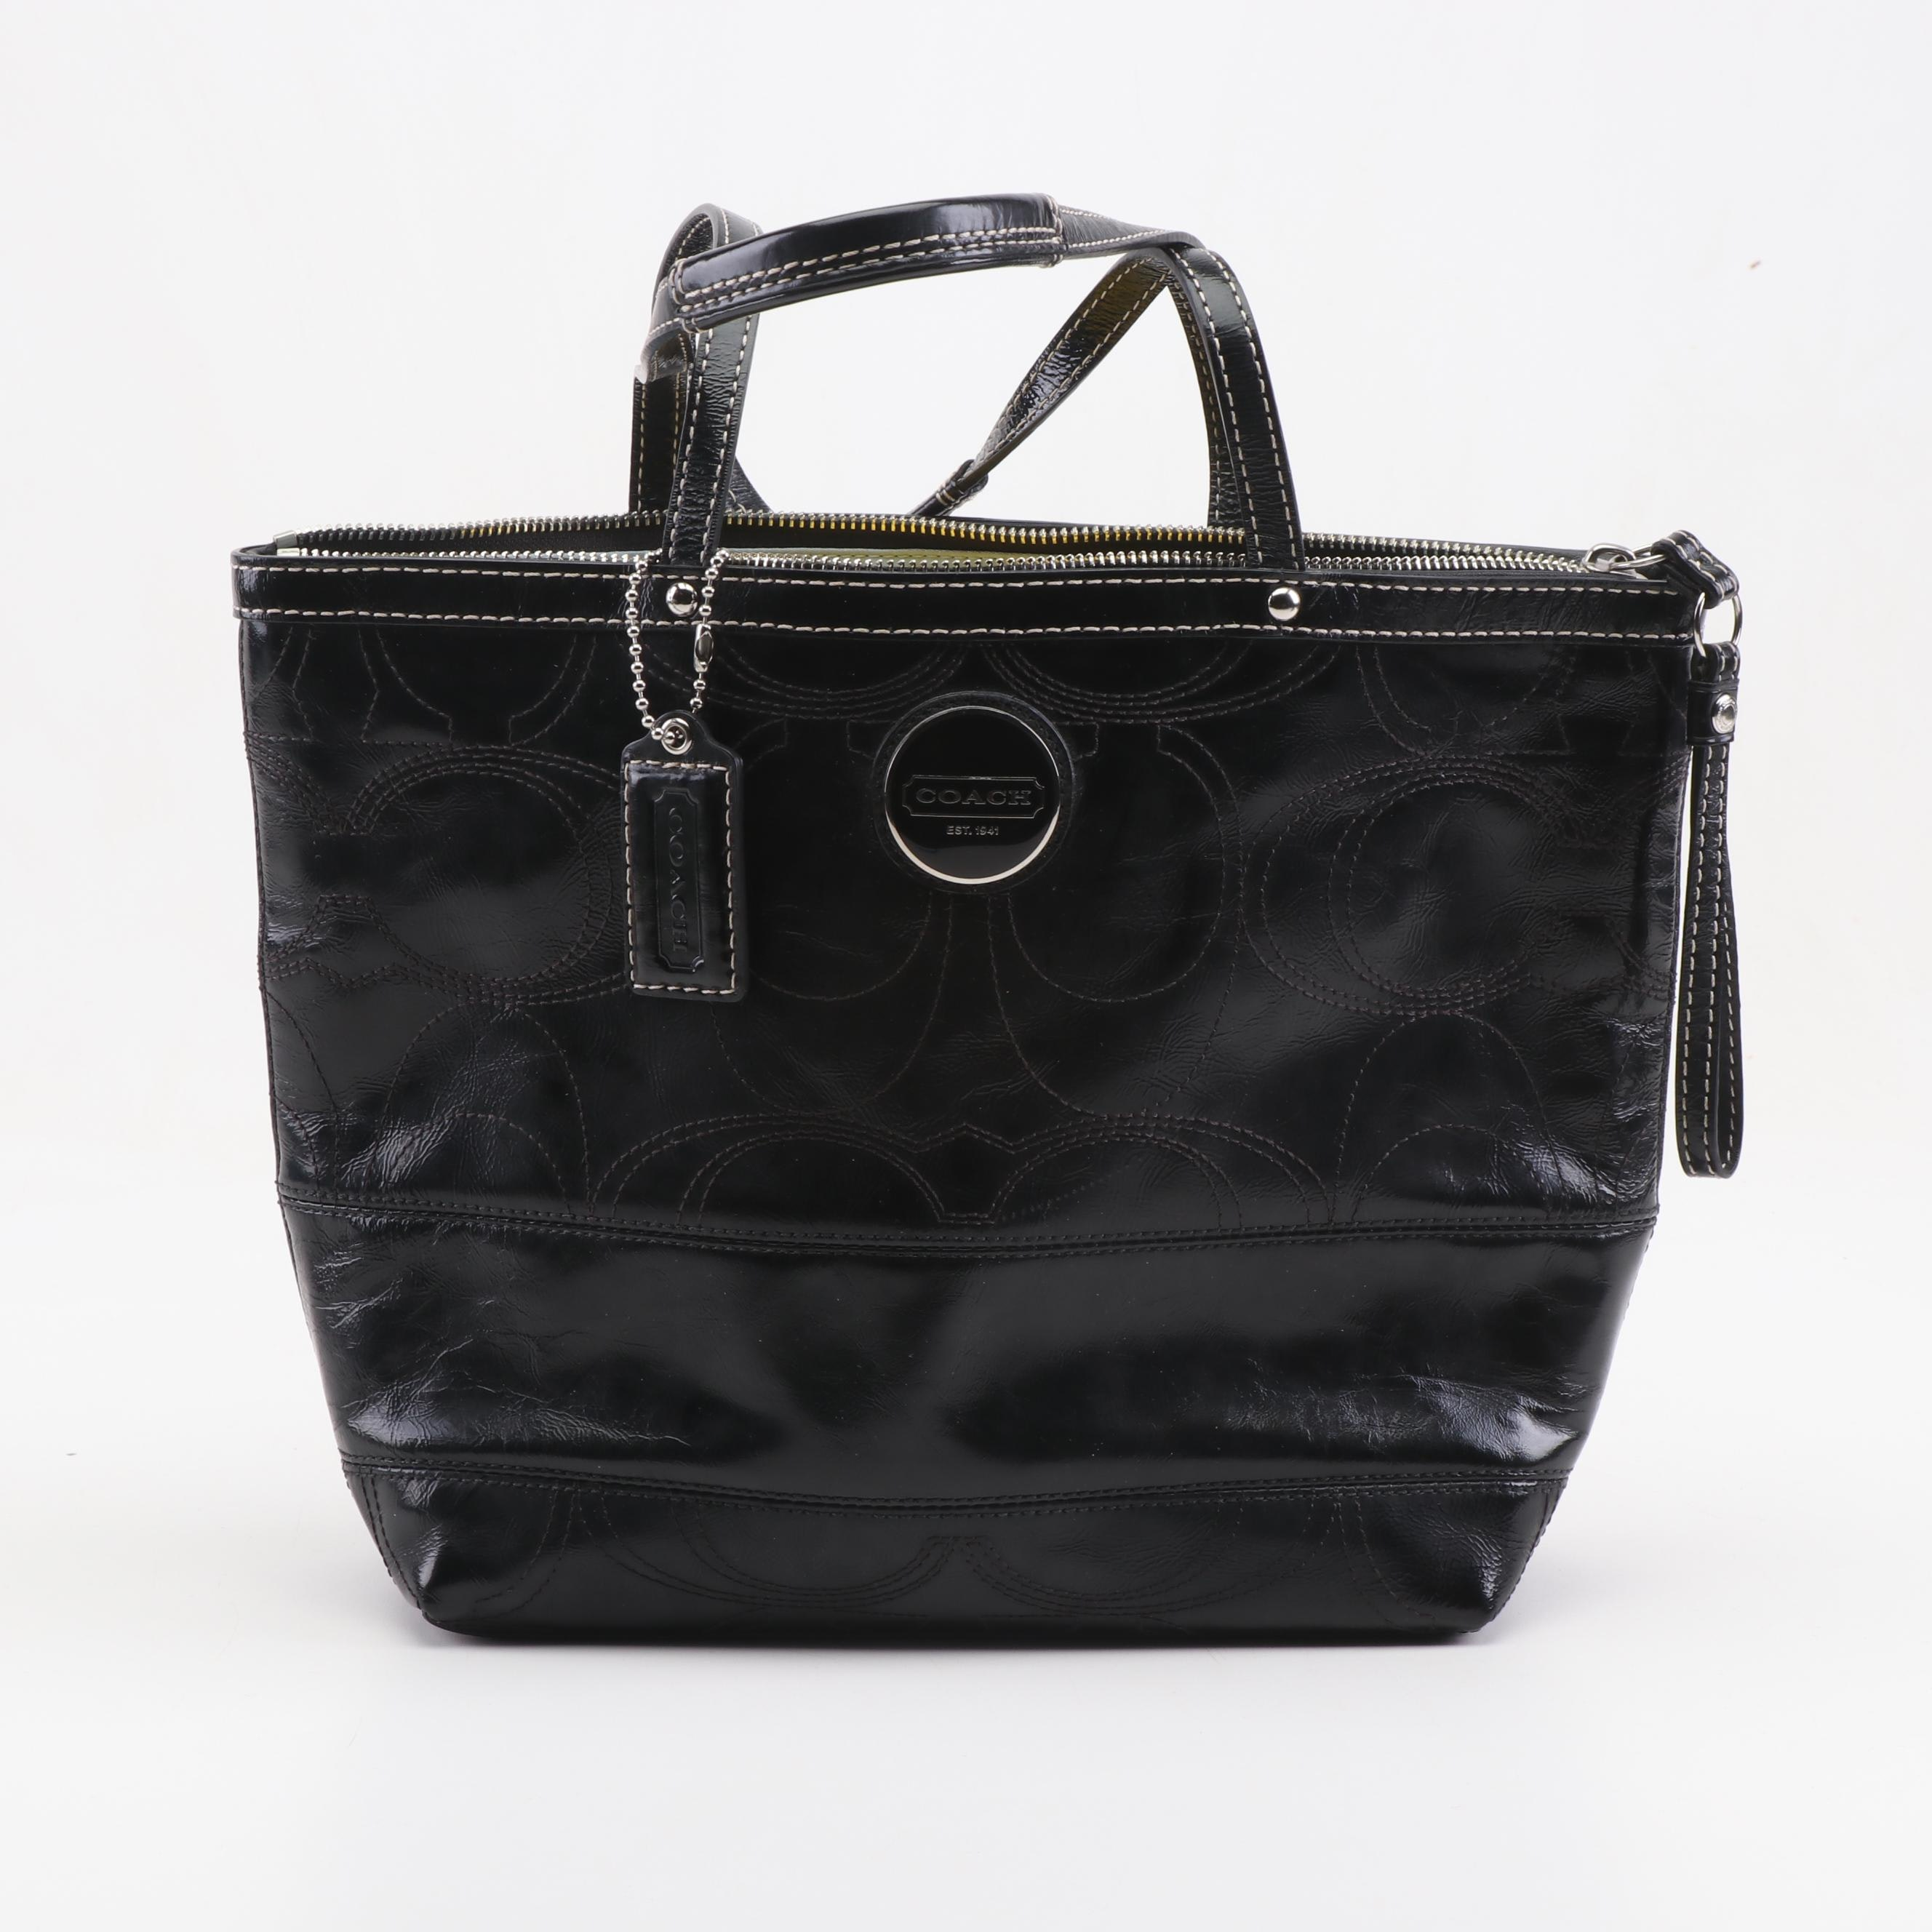 Coach Signature Stripe Black Patent Leather Tote